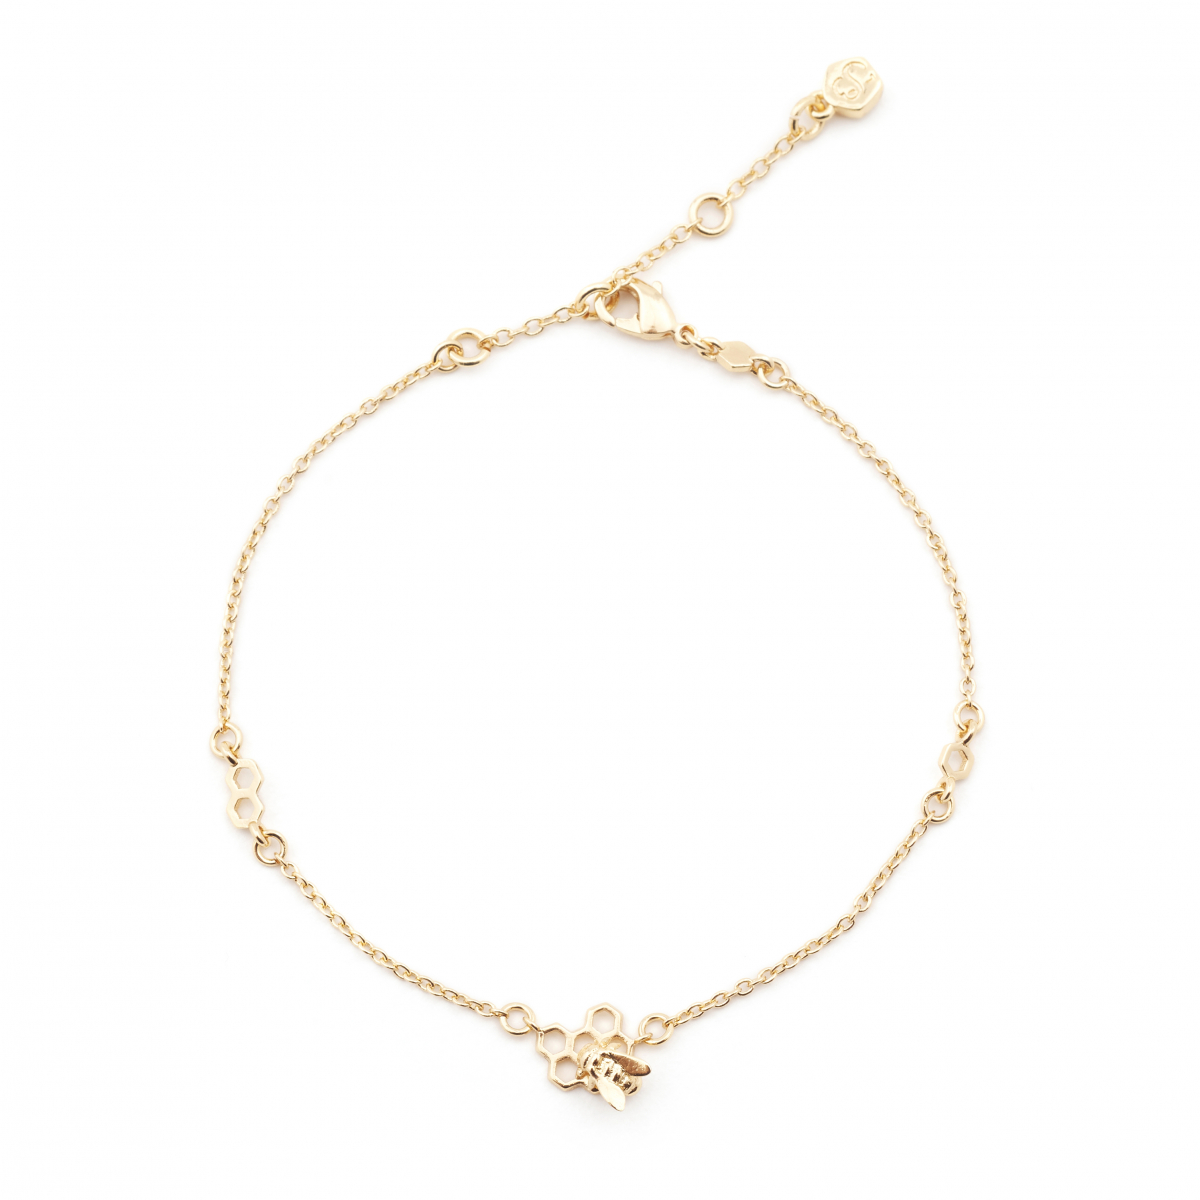 Hexagon Bee & Honeycomb Bee Charm Station Bracelet - Gold